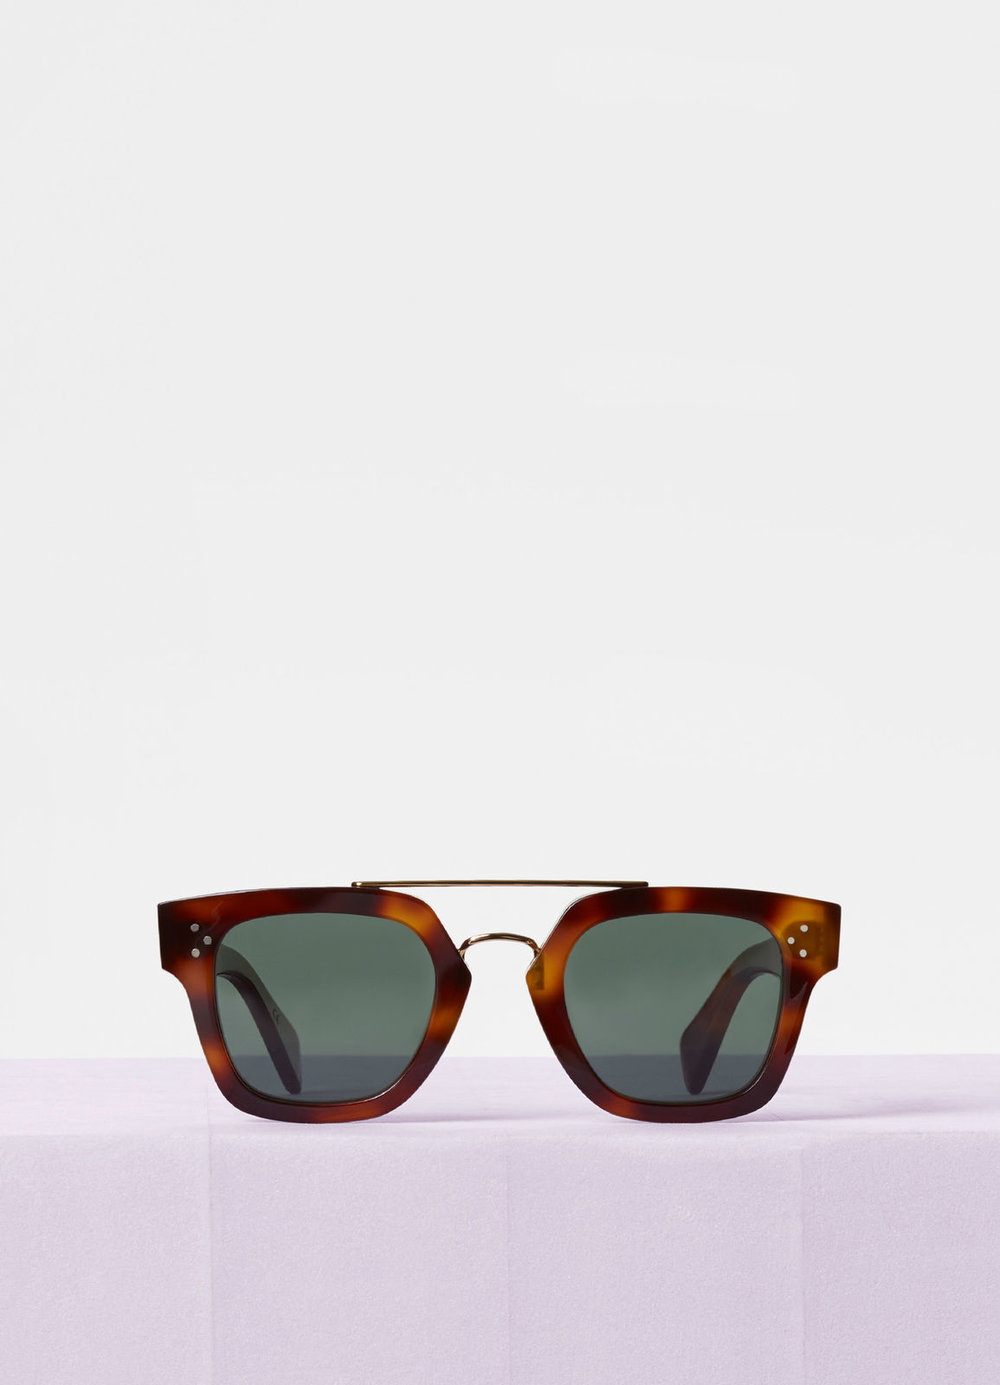 CELINE- CL40024U Sunglasses   £340 (Sold out)   COLOUR  Tortoise/Gold   CATEGORY  SUN   MATERIAL  Combination   SHAPE  Wayfarer